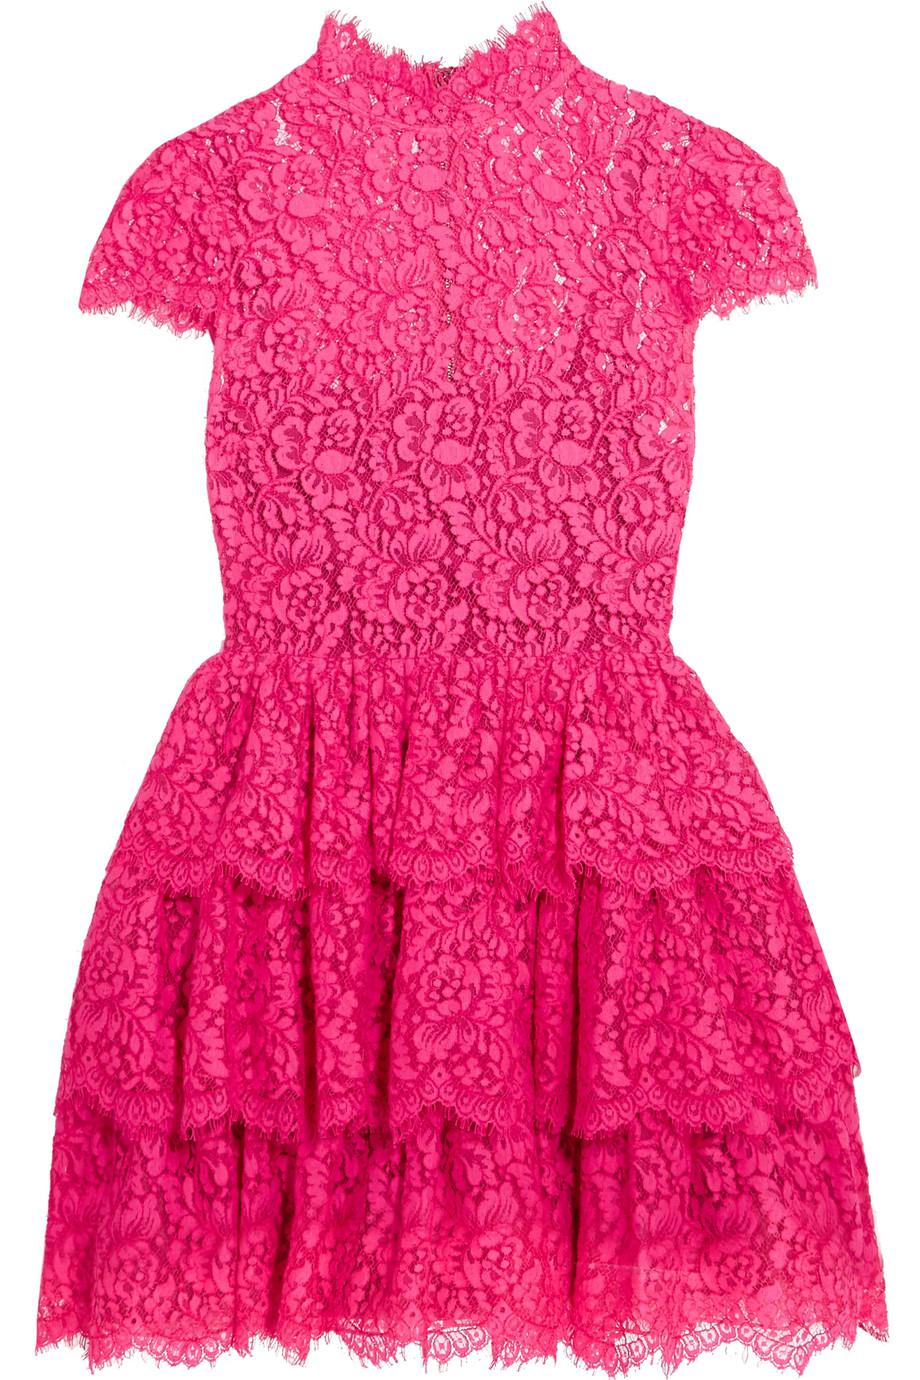 Ruffled Cotton-blend Corded Lace Mini Dress - Pink Alice & Olivia Xg5Sajy